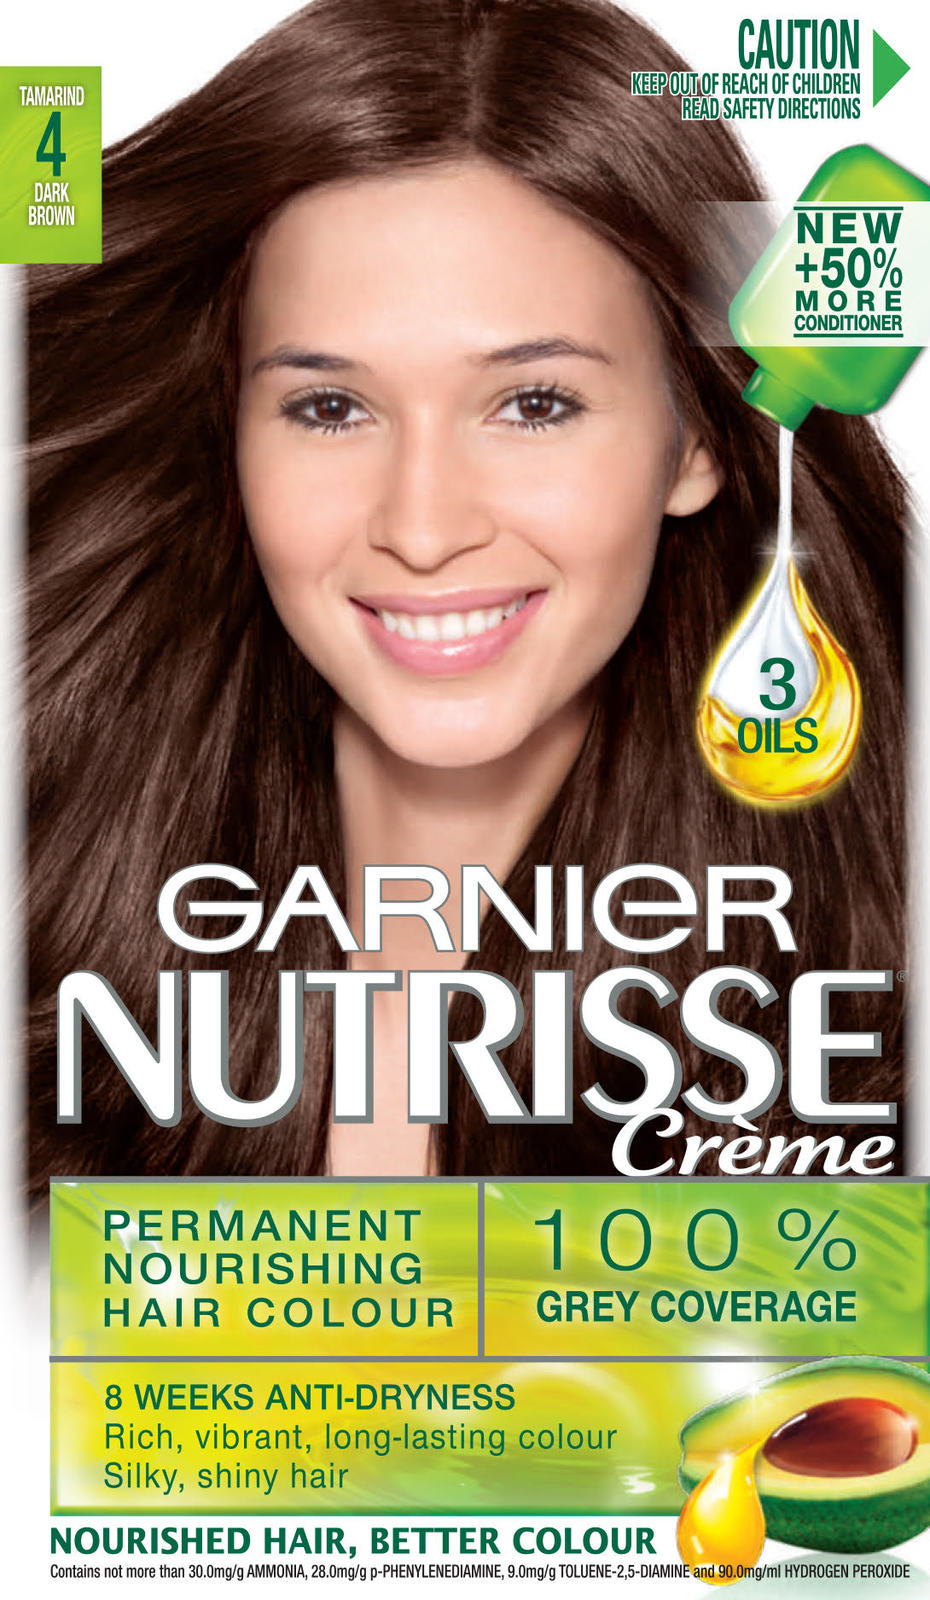 Buy Garnier Nutrisse Hair Colour 4.0 Tamarind at Mighty Ape NZ